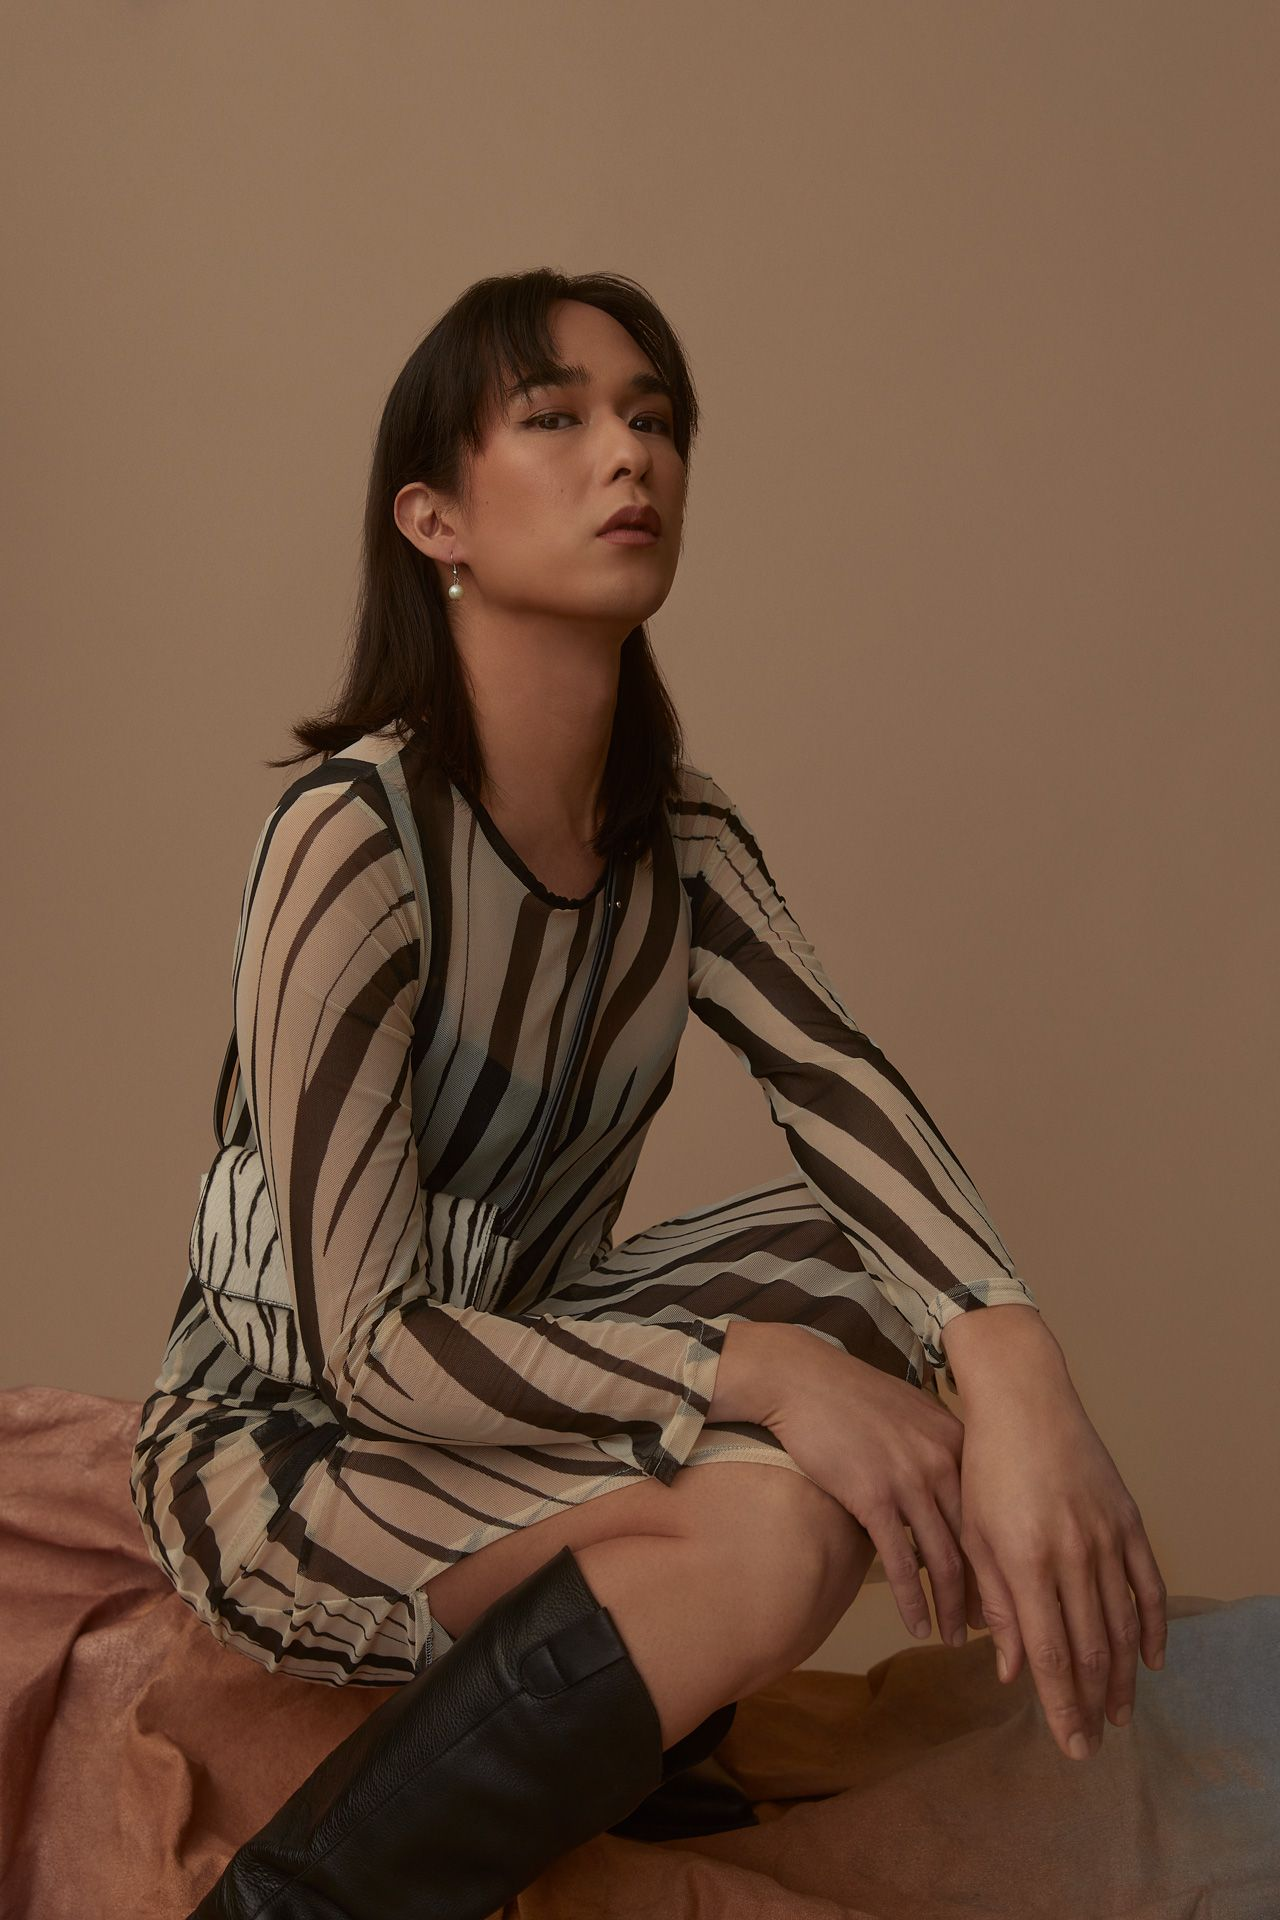 brown haired female model wearing see-through zebra dress and knee-high black leather boots looking at camera on beige background photographed by Kelly Jacob for LEV